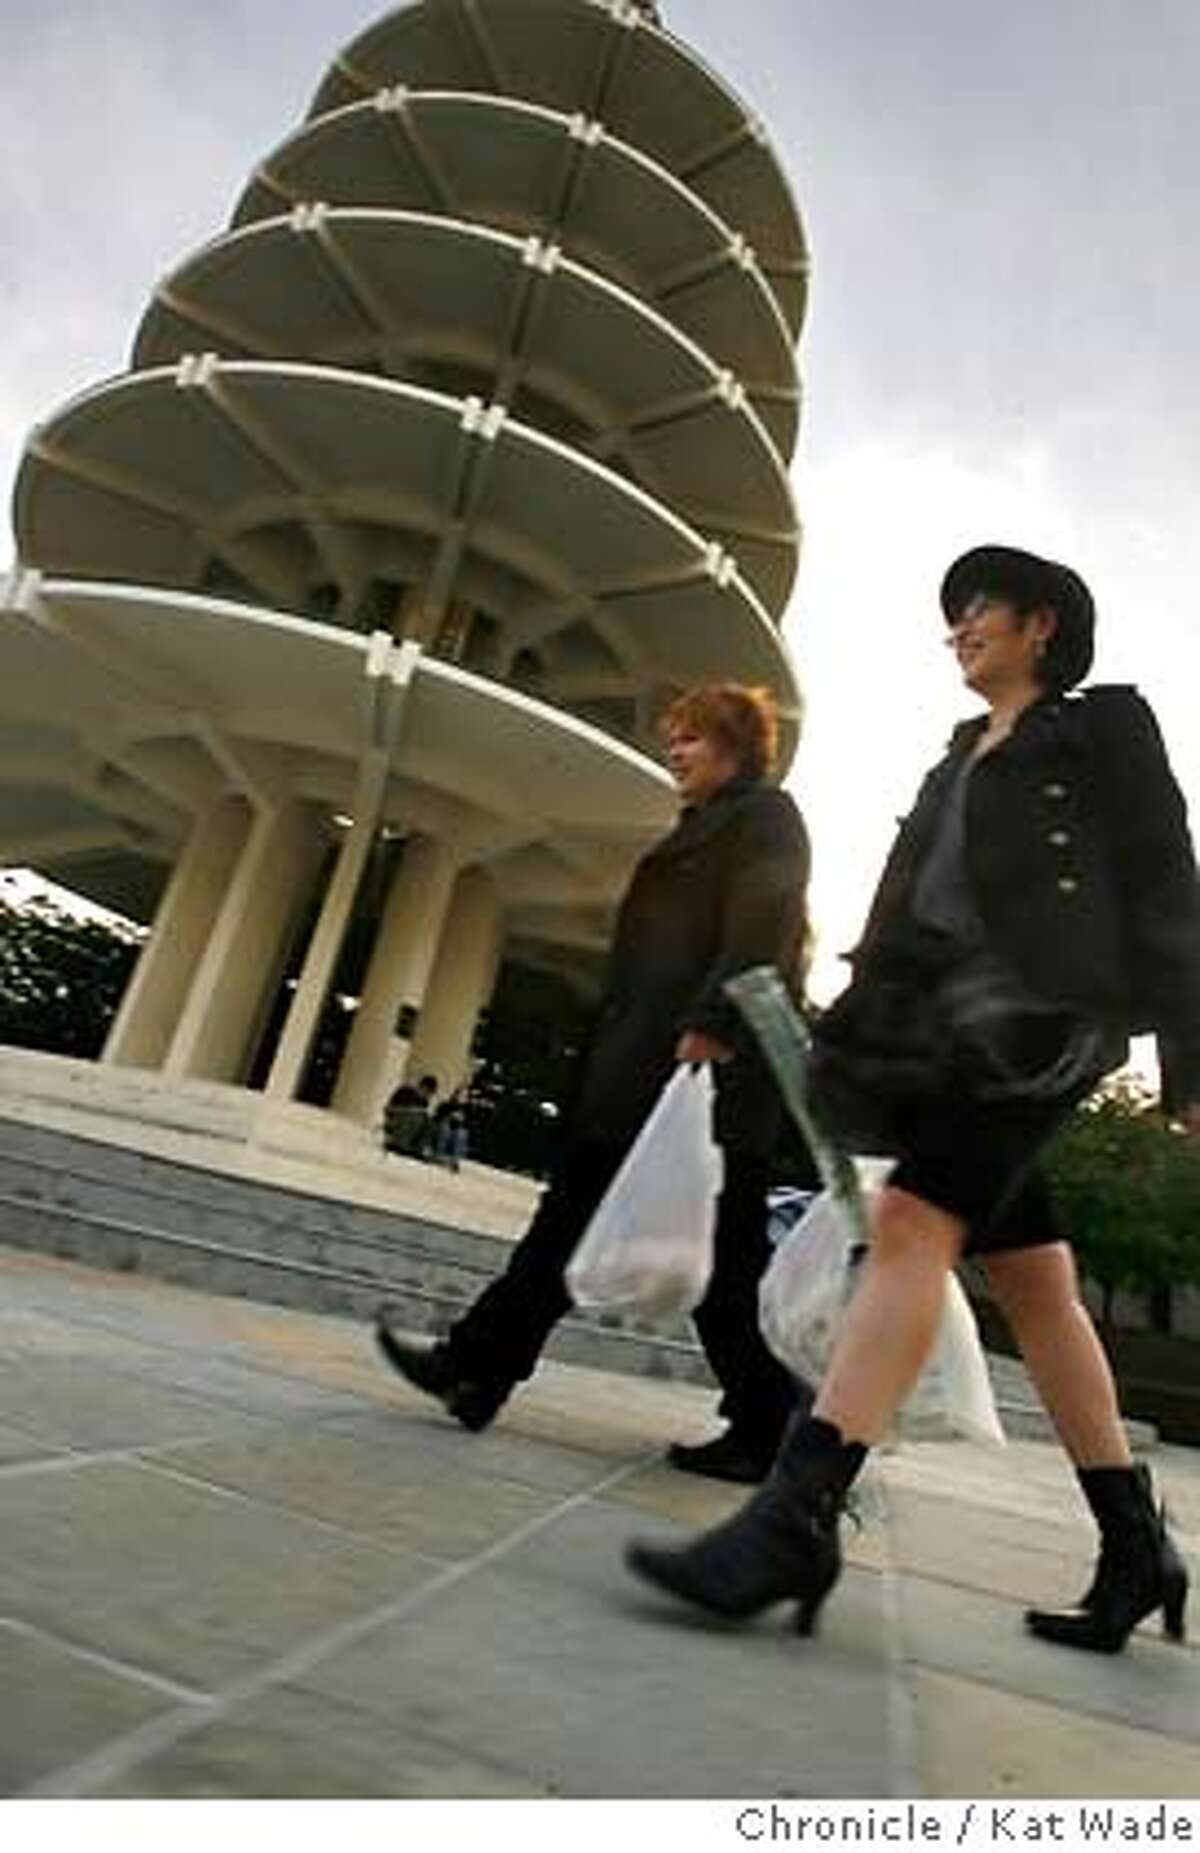 JTOWNPOP_0072_KW_.jpg (L TO R) Masaki Matsumoto from San Francisco and his mother, Chitose Matsumoto, who is visiting from Japan walk past the pagoda in Peace Plaza in Japantown Monday October 9, 2006. In the background New San Francisco residents Rudy Agtarap and Sachiko Ueyama sit beneath the pagoda. Kat Wade/The Chronicle Ran on: 10-10-2006 Masaki Matsumoto of San Francisco and his mother, Chitose Matsumoto, visiting from Japan, walk past the Peace Plaza pagoda.